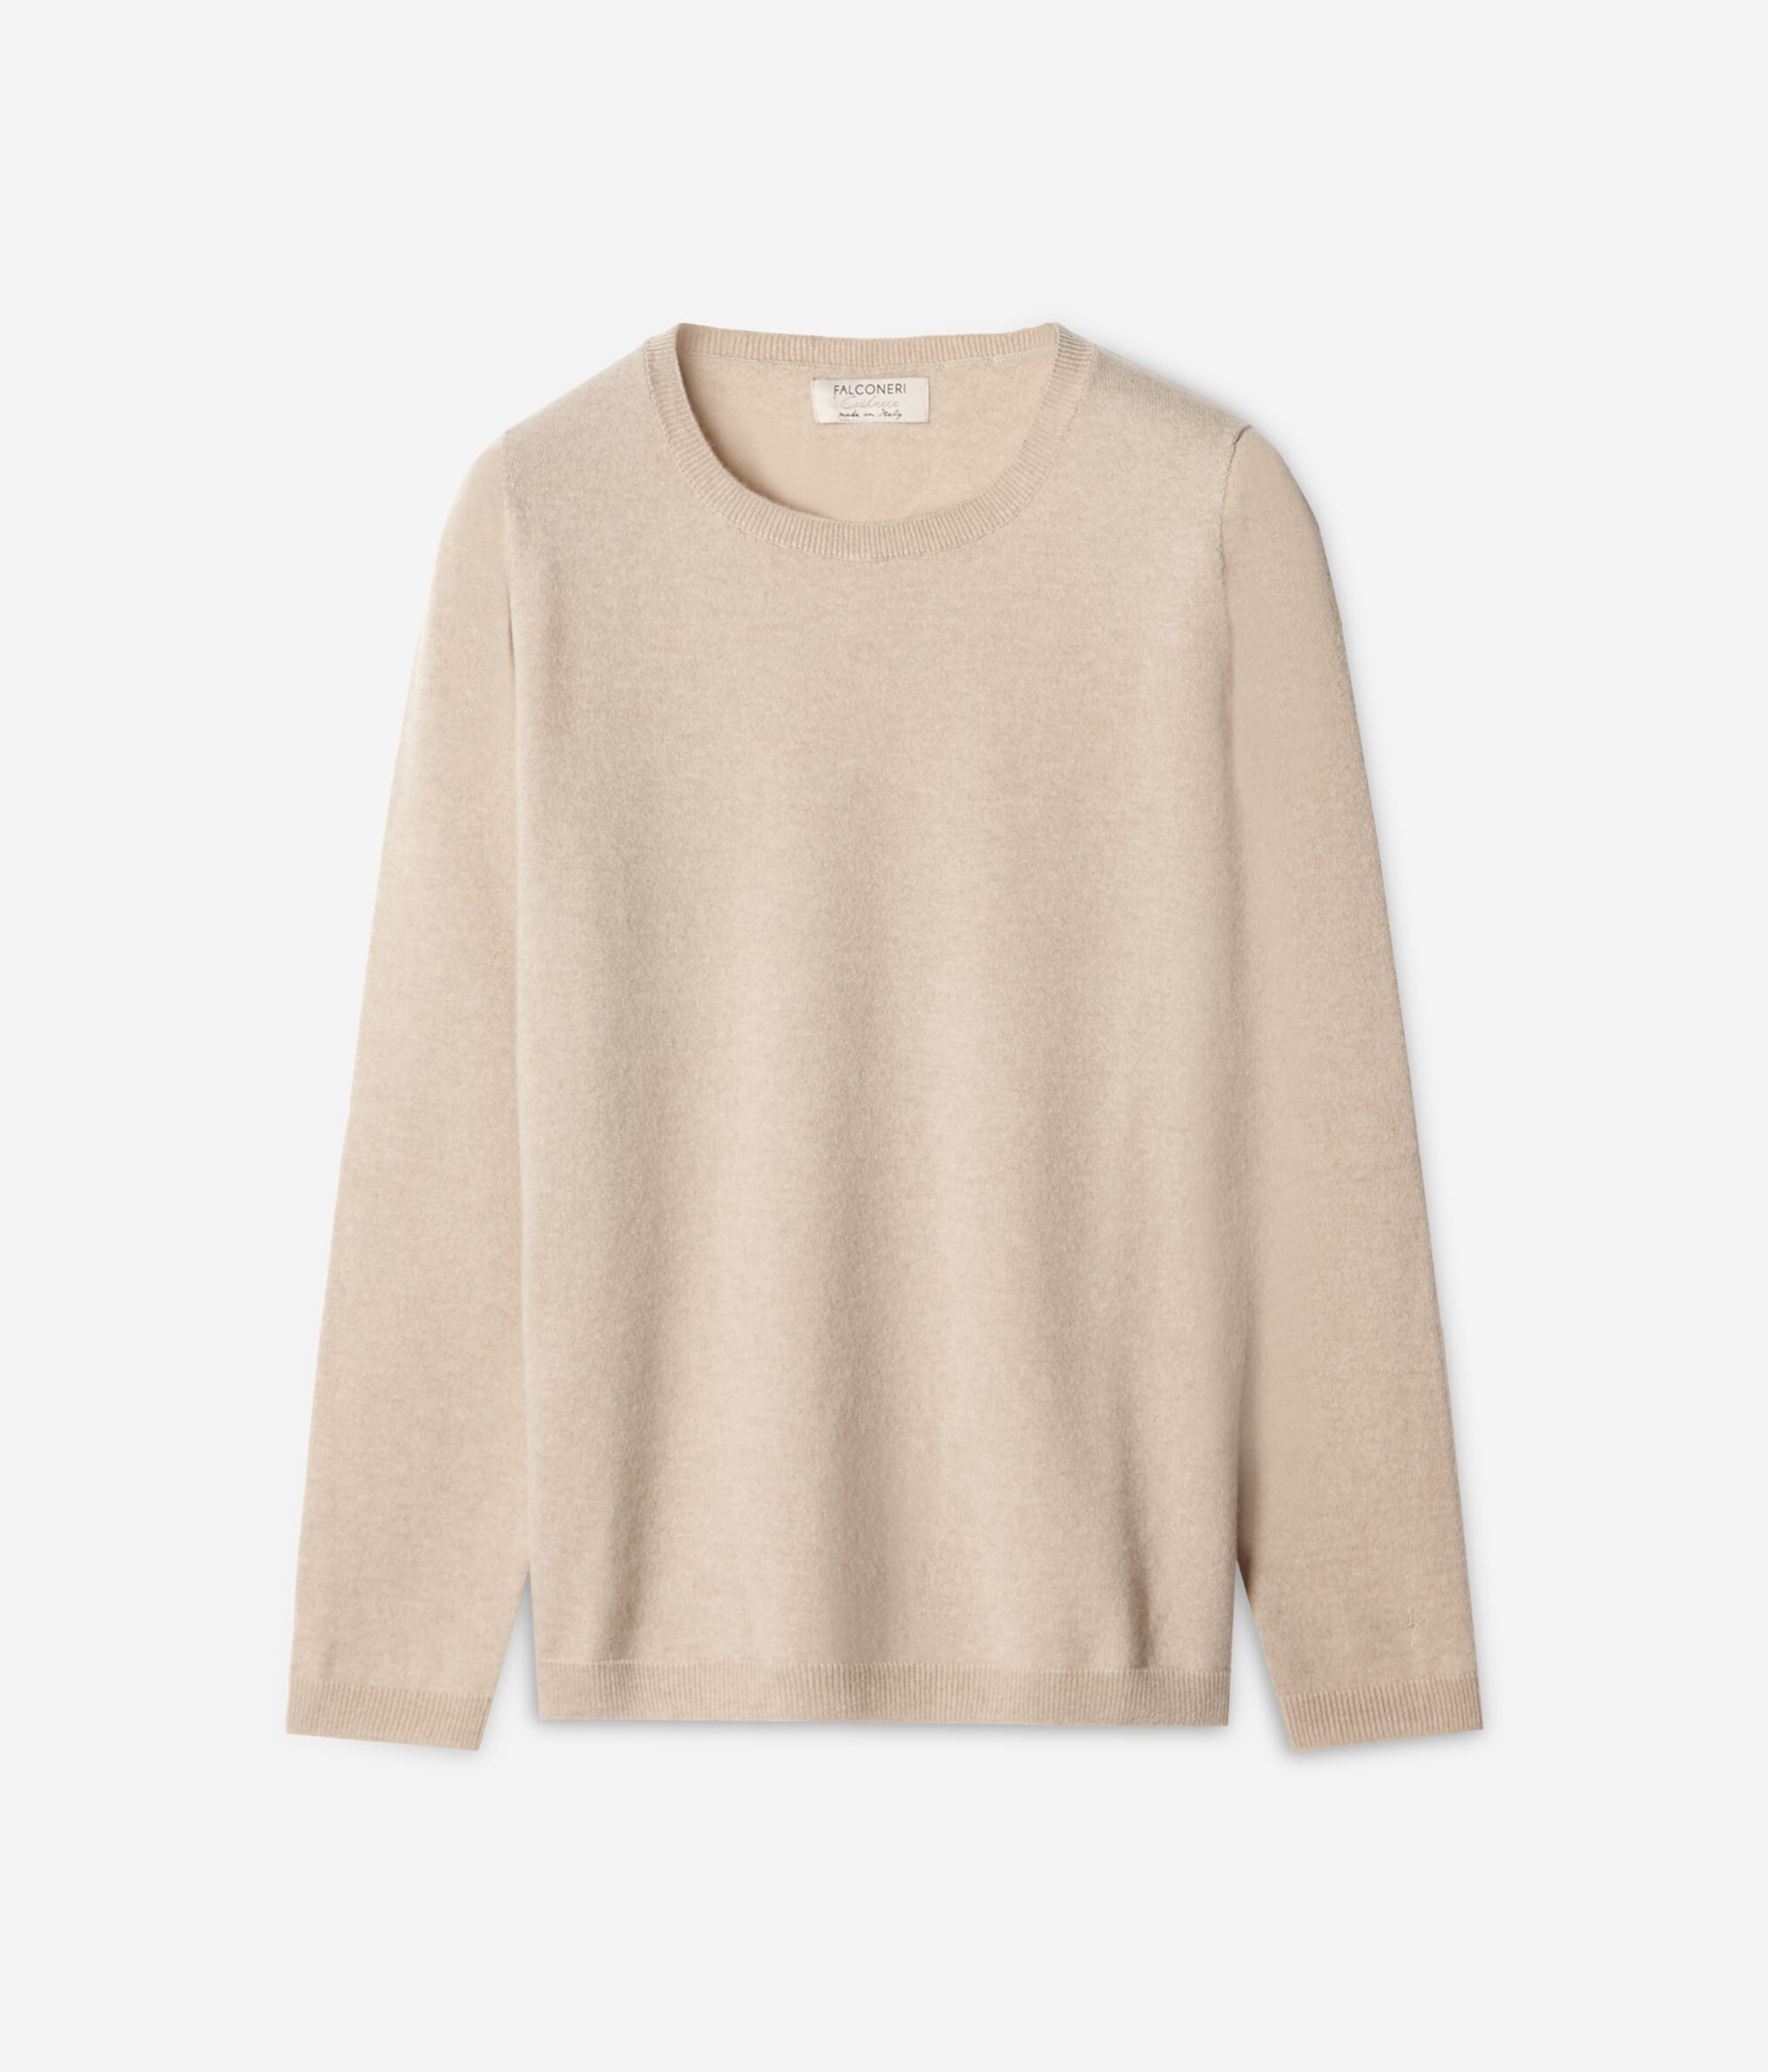 Ultra soft Cashmere Crewneck Sweater